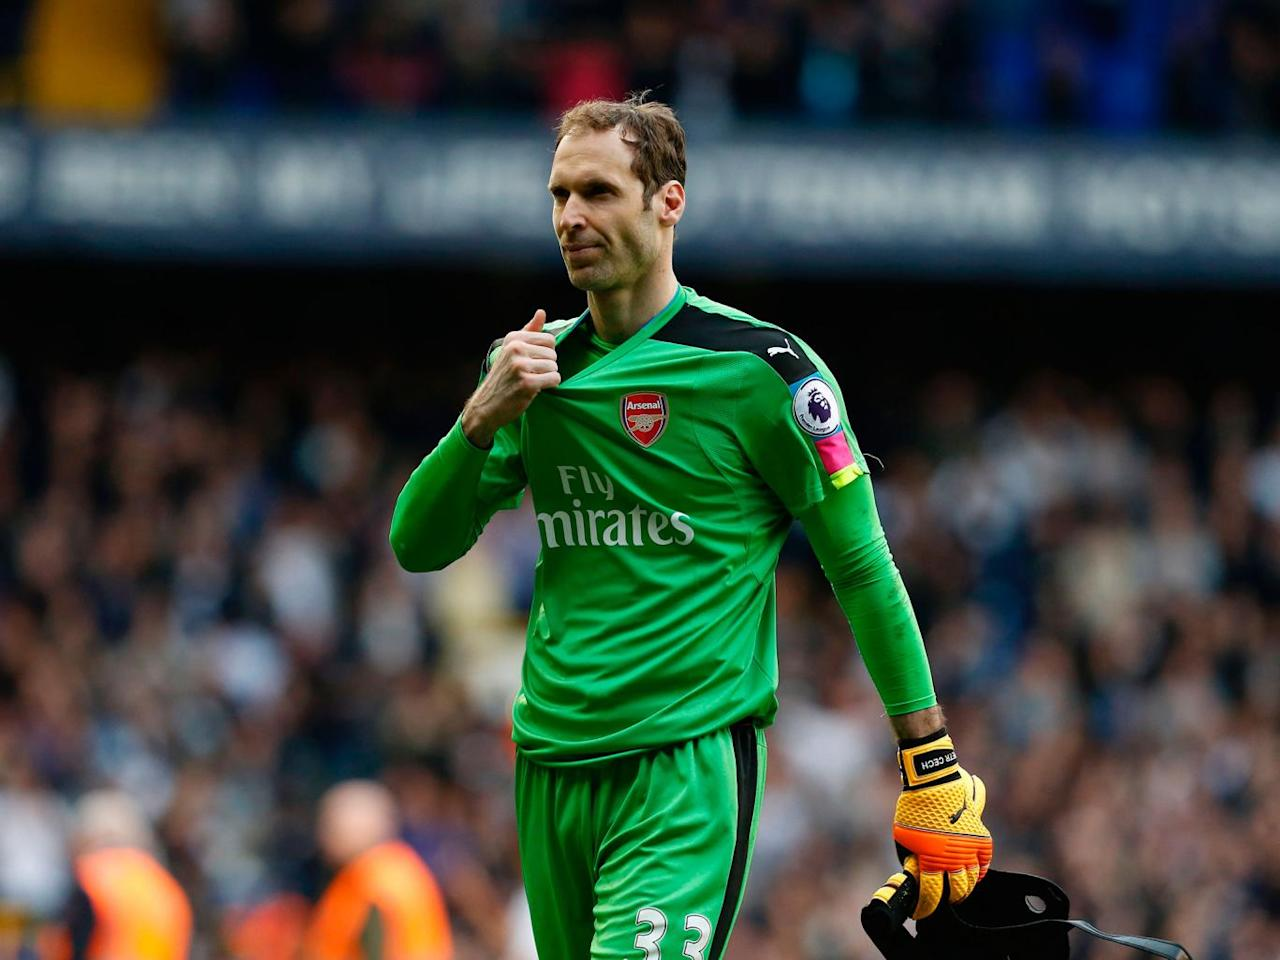 Petr Cech says Arsenal missing out on the Champions League is 'not a problem' - providing they keep their best players